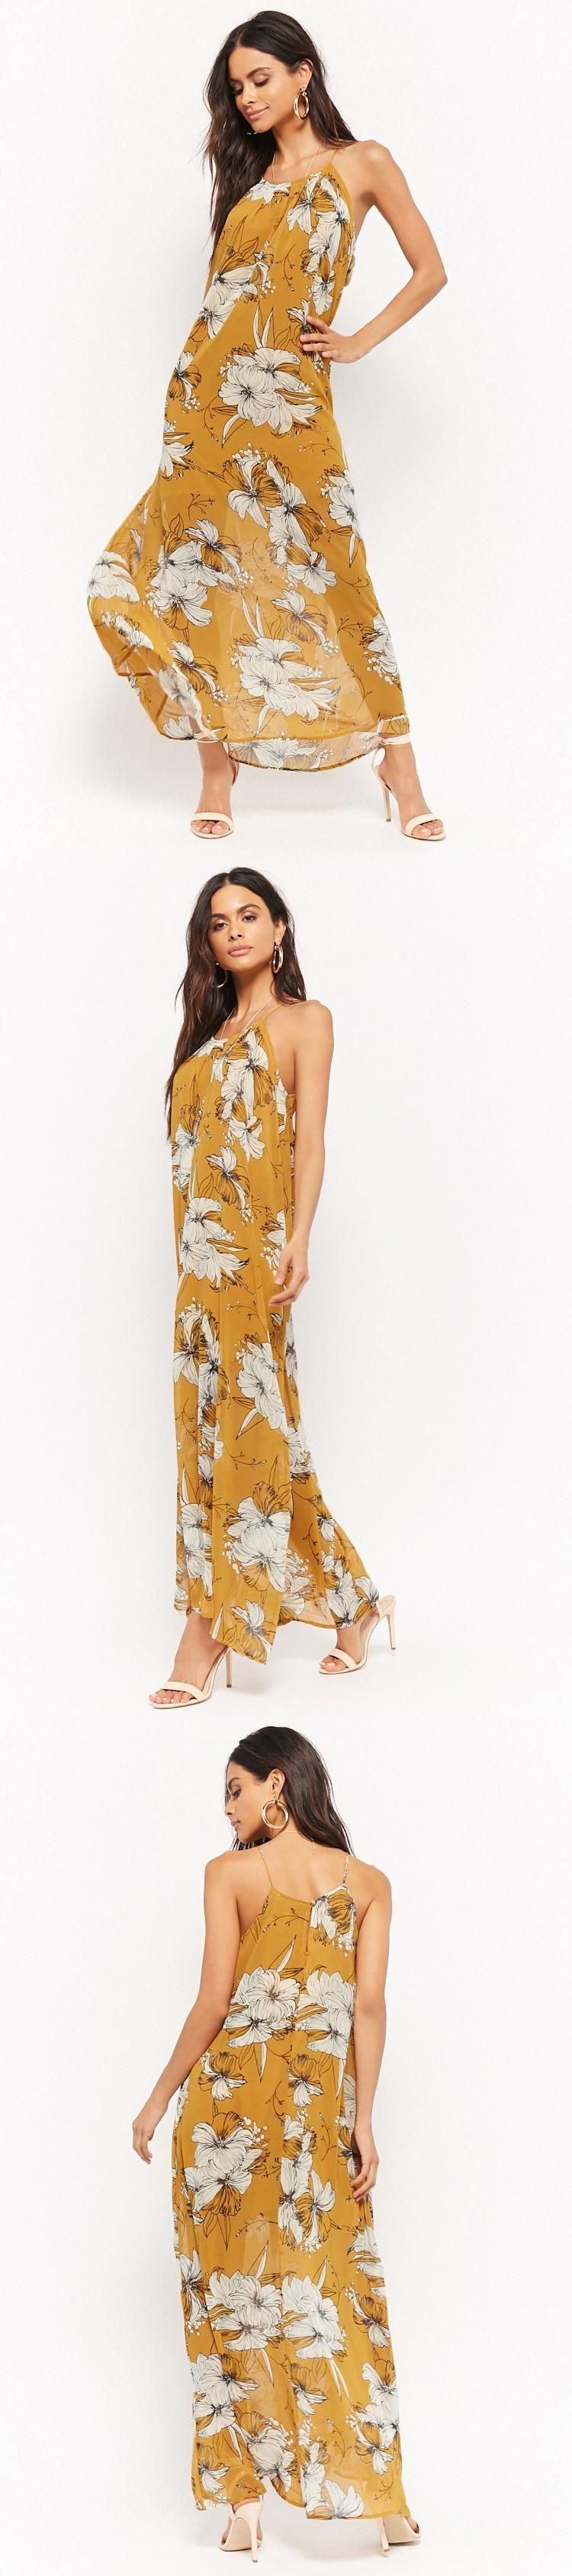 Floral maxi dress usd forever new forever